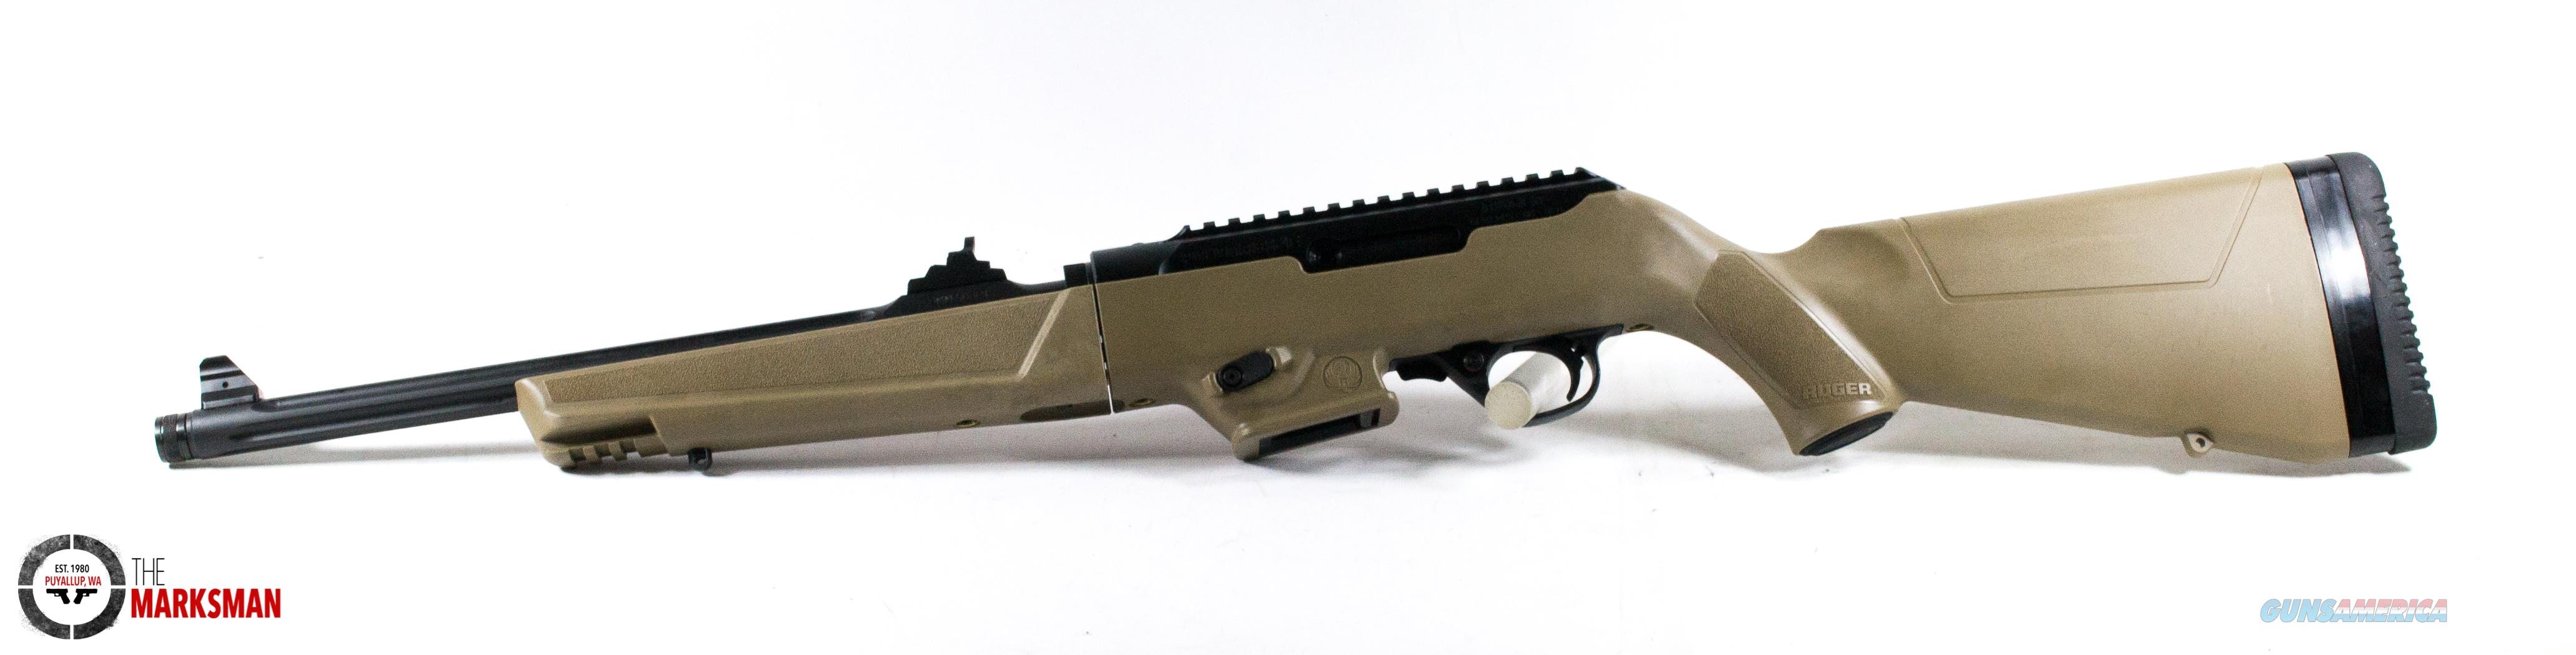 Ruger PC Carbine, 9mm, FDE, Talo Exclusive   Guns > Rifles > Ruger Rifles > SR Series